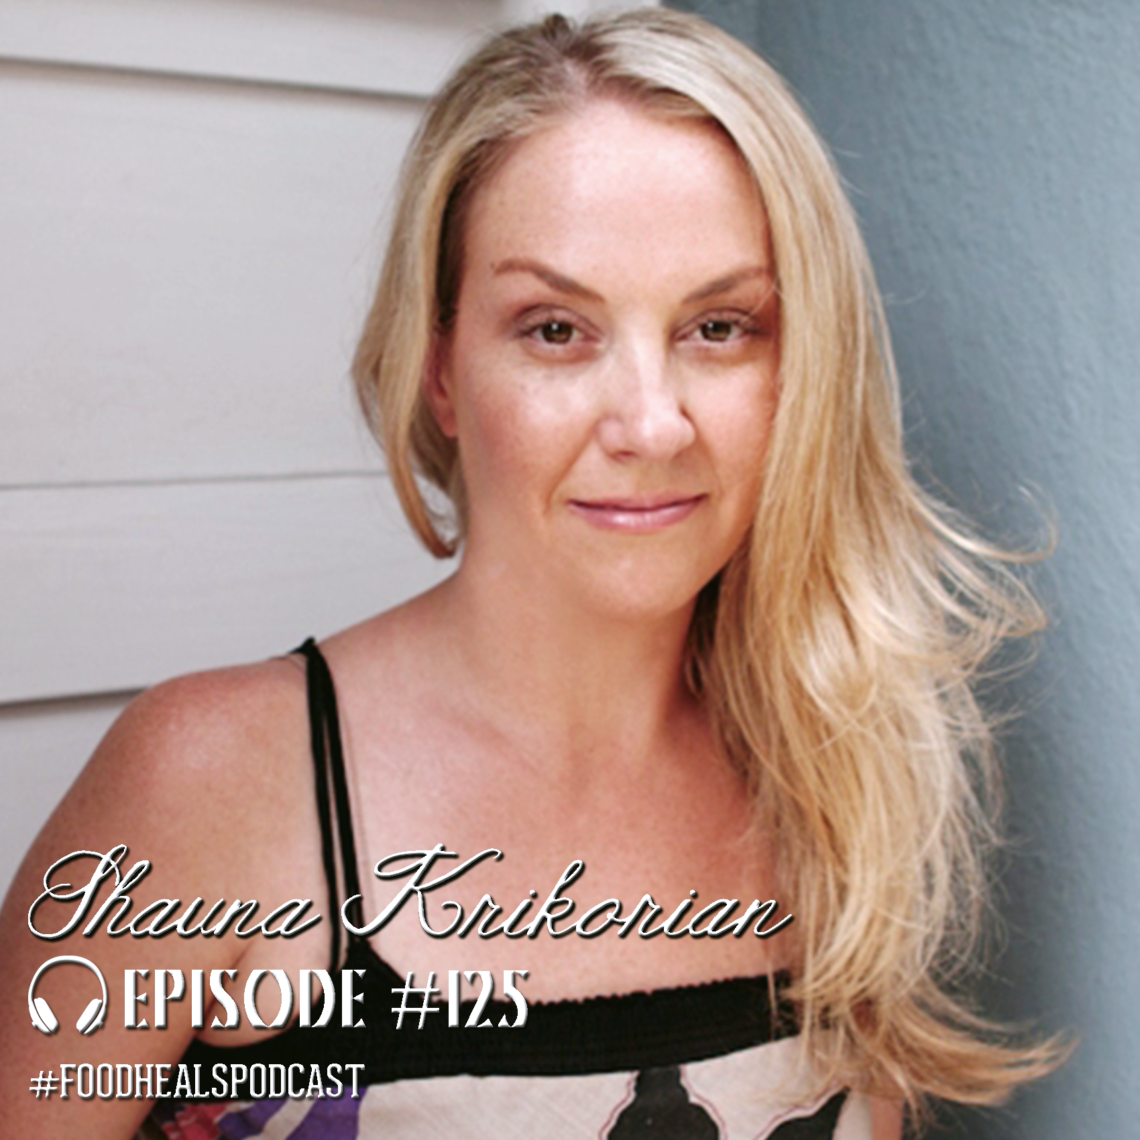 Shauna Krikorian, Clinical Hypnotherapist